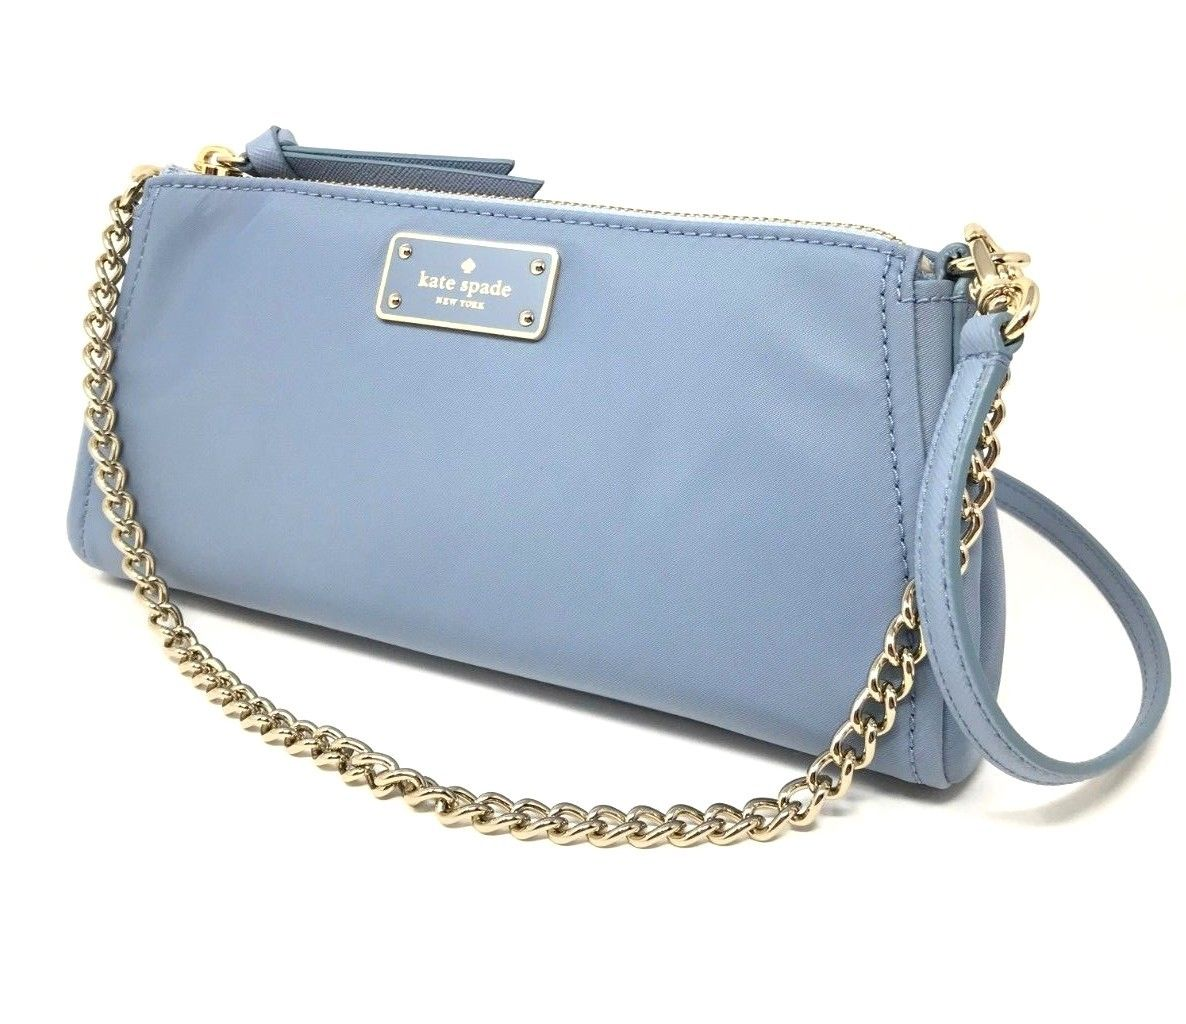 Kate Spade Jane Wilson Road Nylon Crossbody Cloud Cover Blue WKRU5398 $199